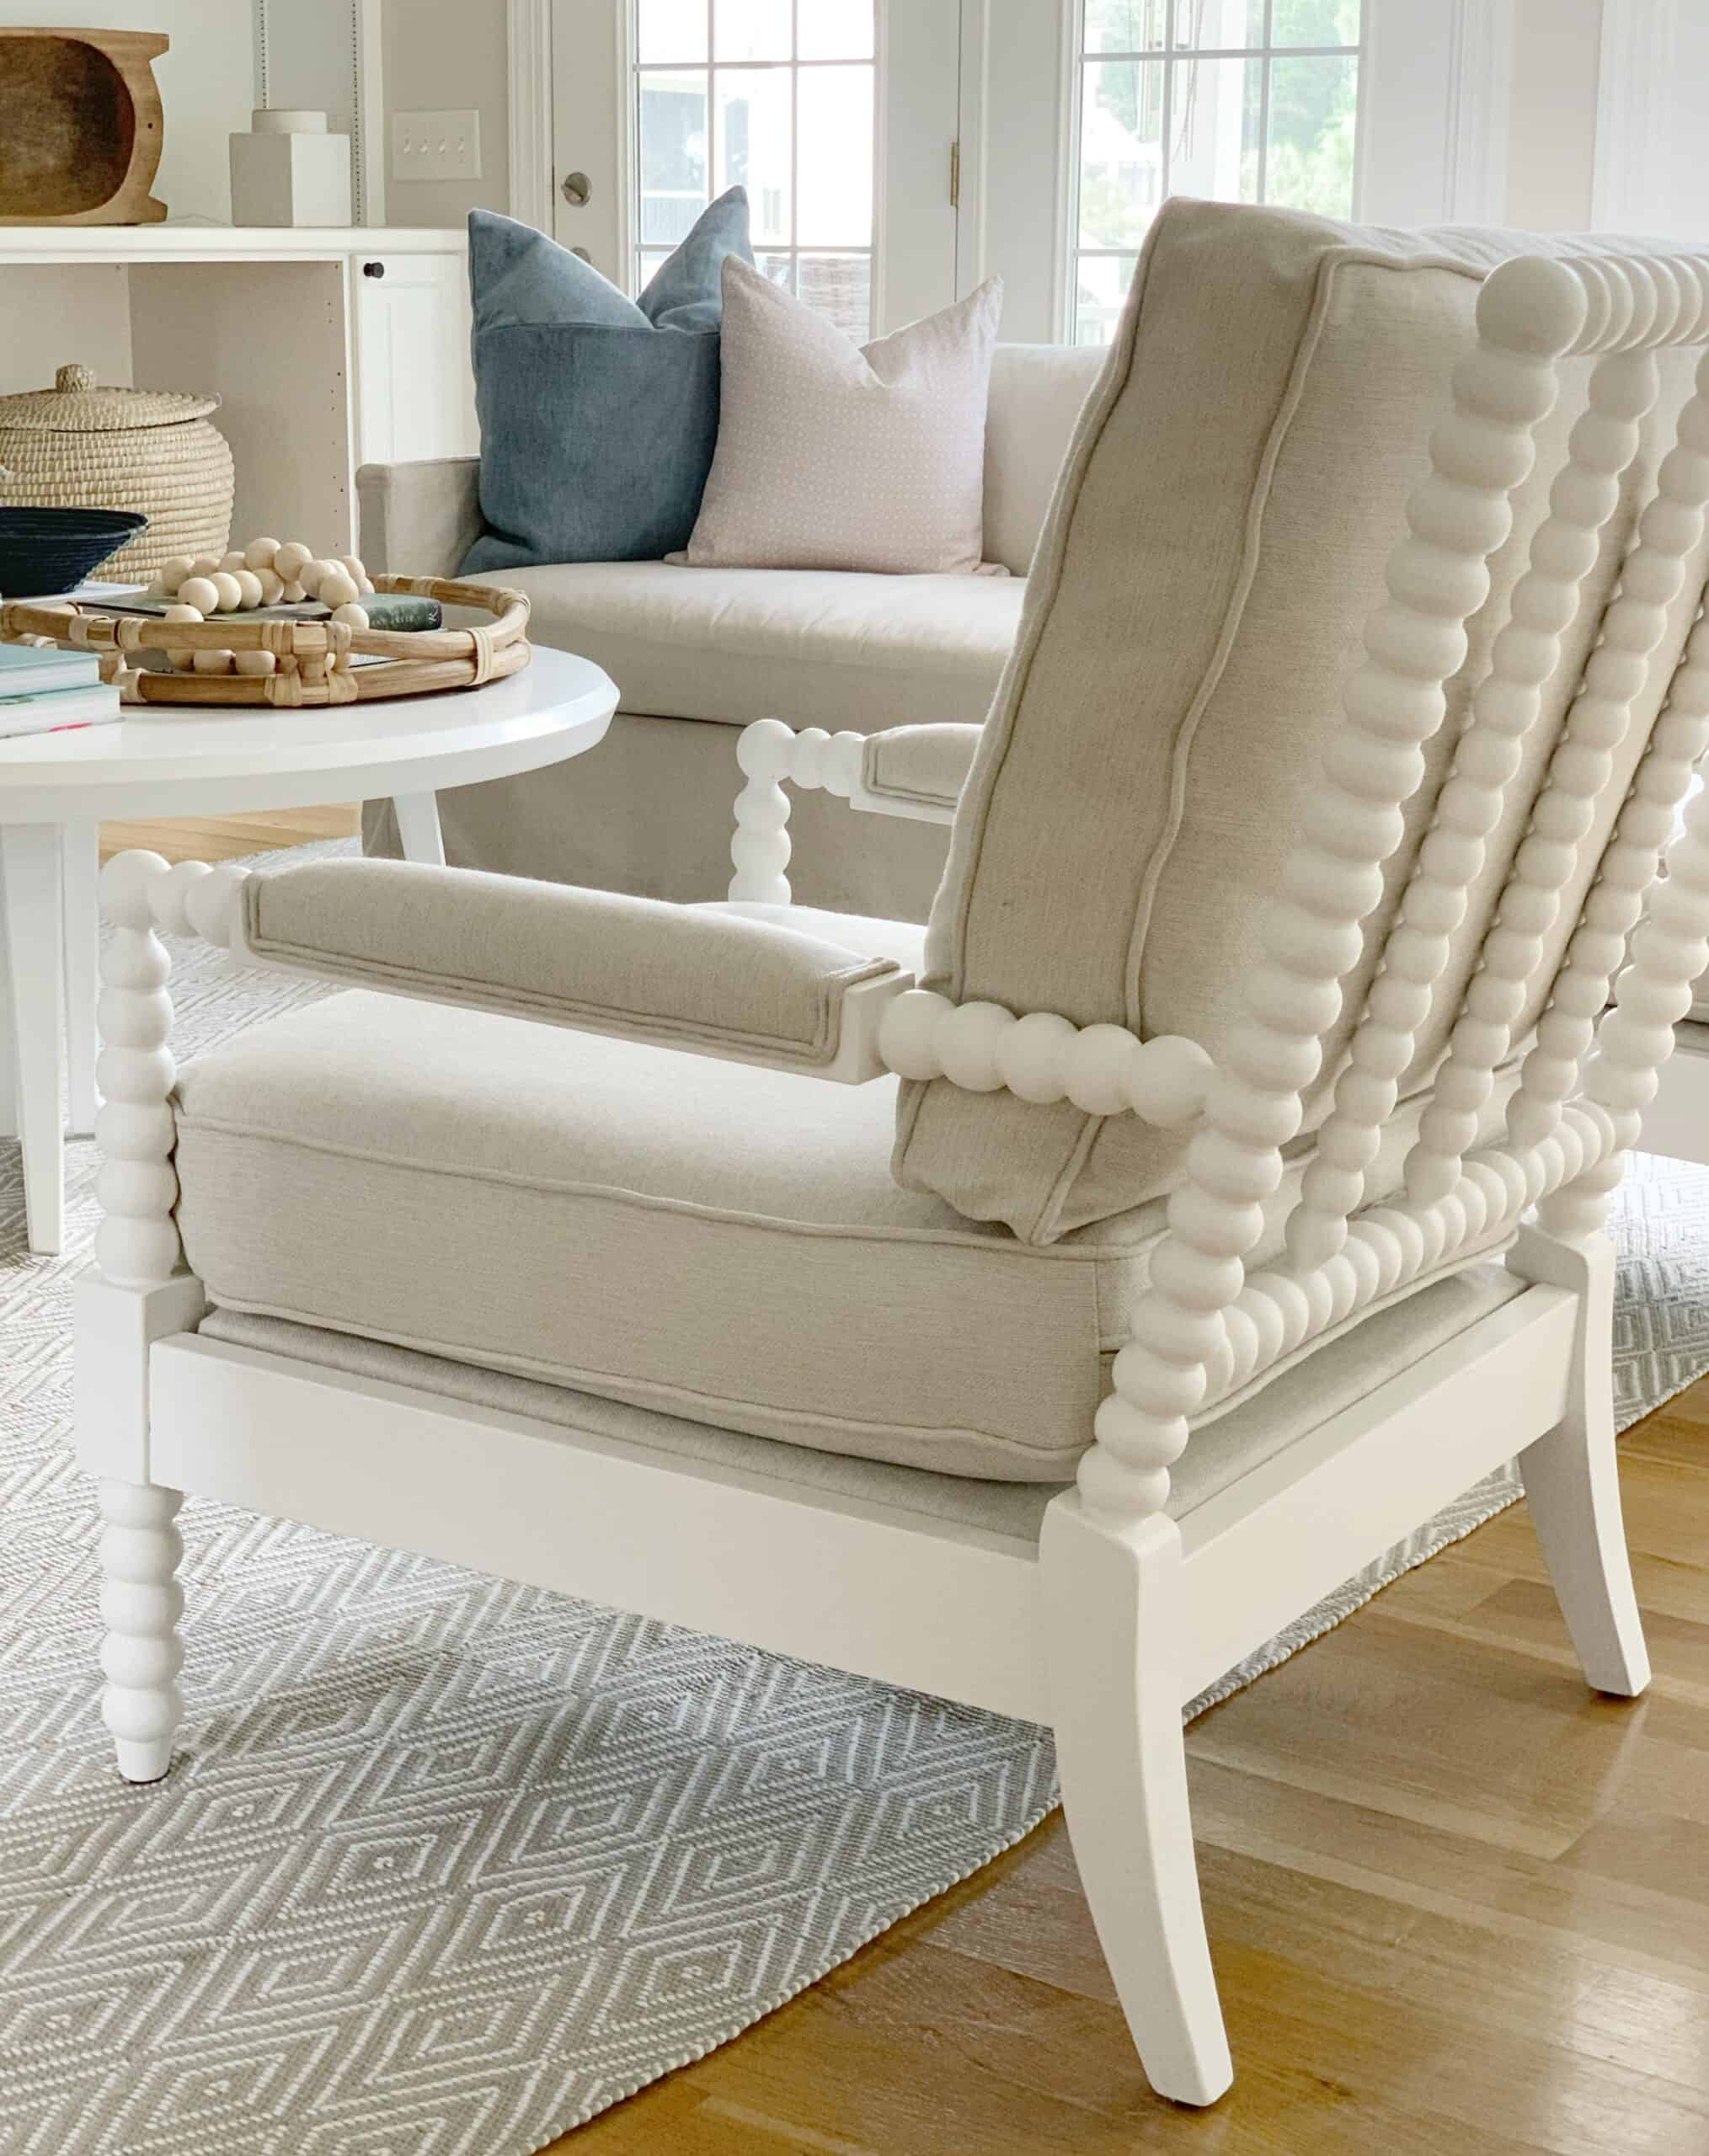 Spindle chair round up with splurge and save options. #coastalhome #coastalliving #spindlechair #spoolchair #accentchair #fusionpaint #fusion #mineralpaint #serenaandlily #birchlane #livingroomfurniture #livingroomchairs